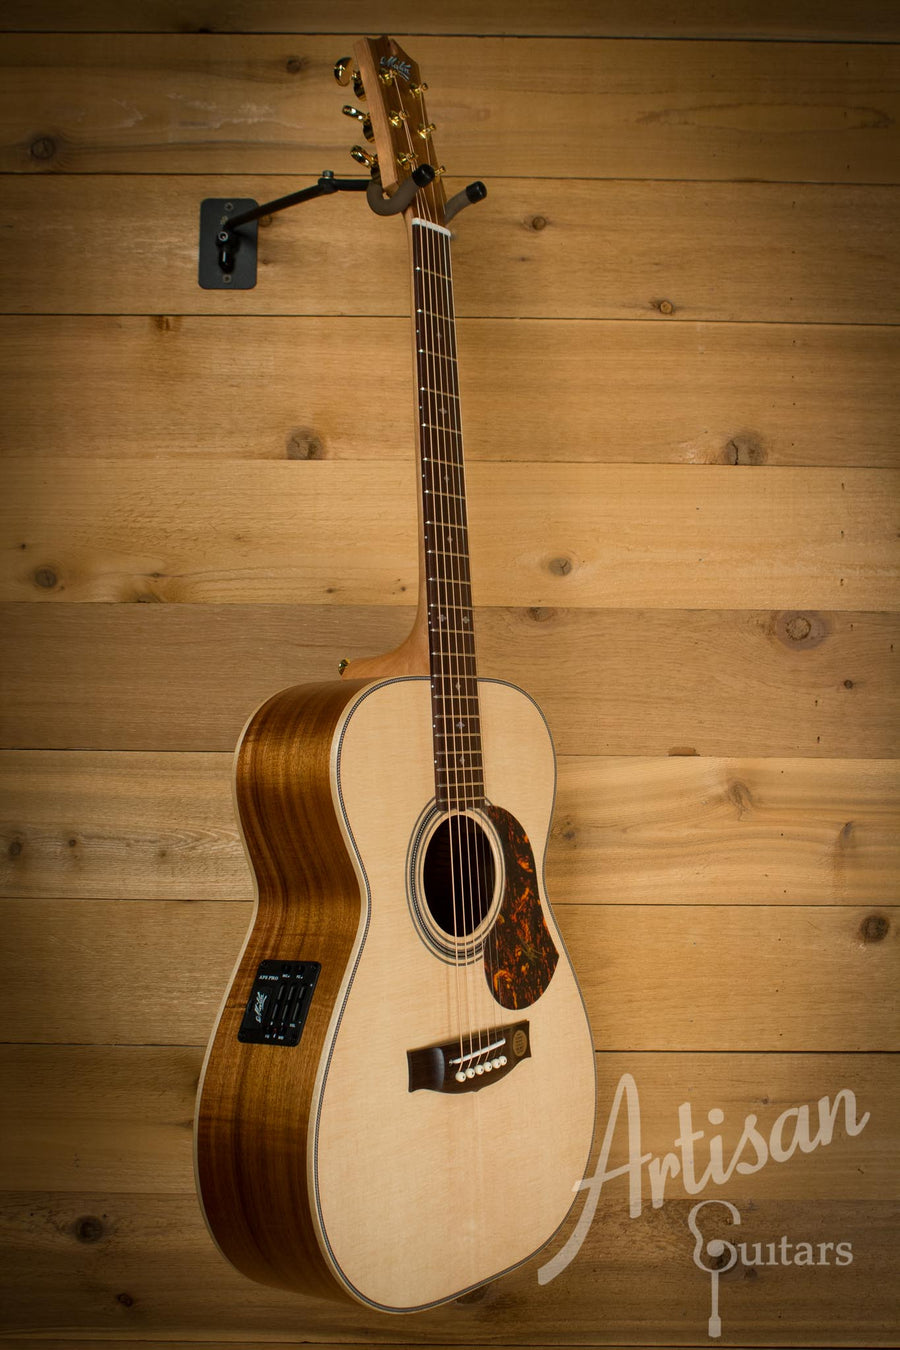 Maton EBG808 Artist Series Sitka Spruce and Blackwood AP5 Pro ID-10121 - Artisan Guitars